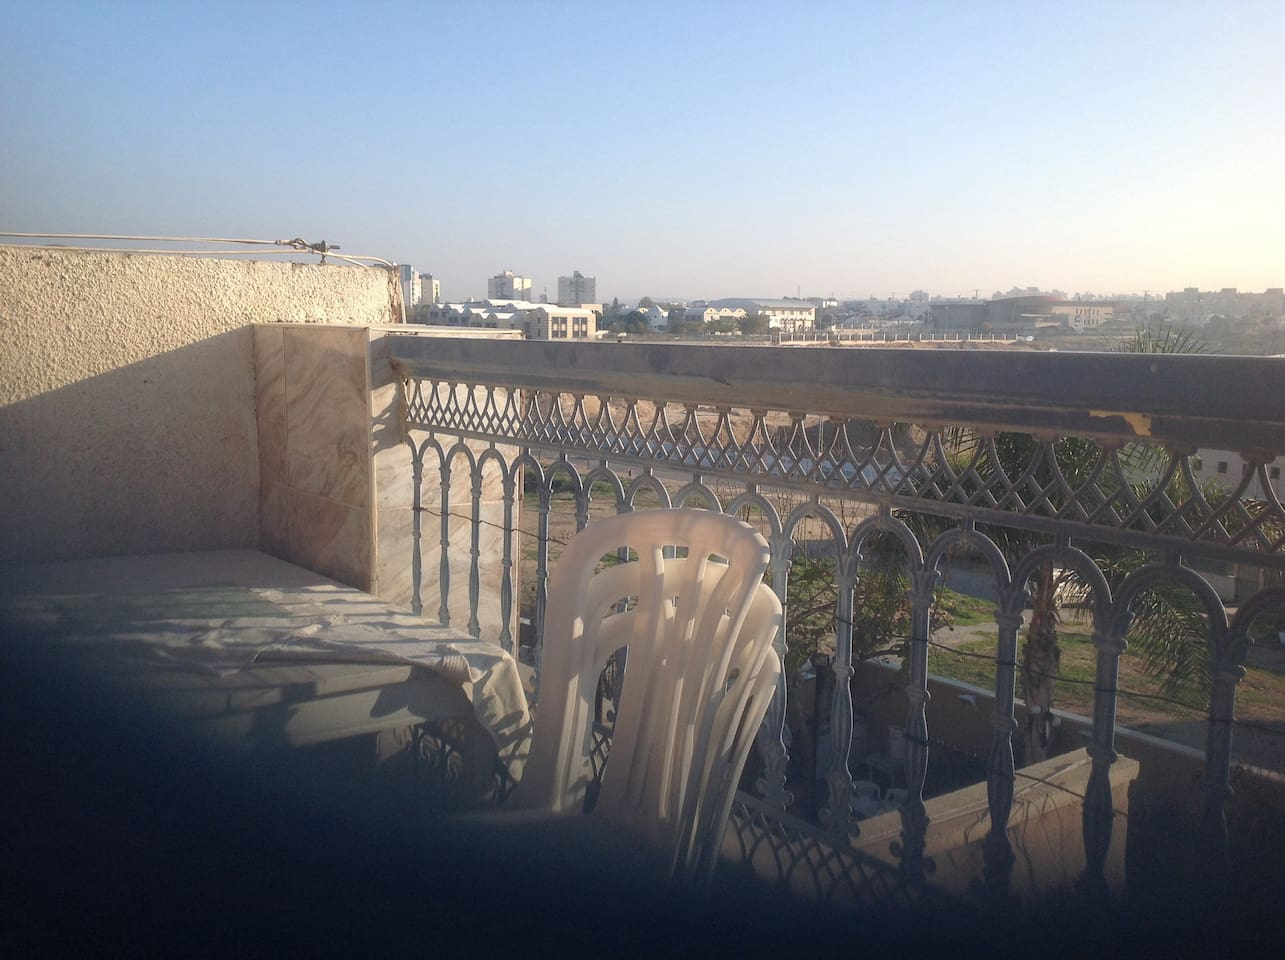 The summer time on the balcony is the best option to rest and to observe the surrounding